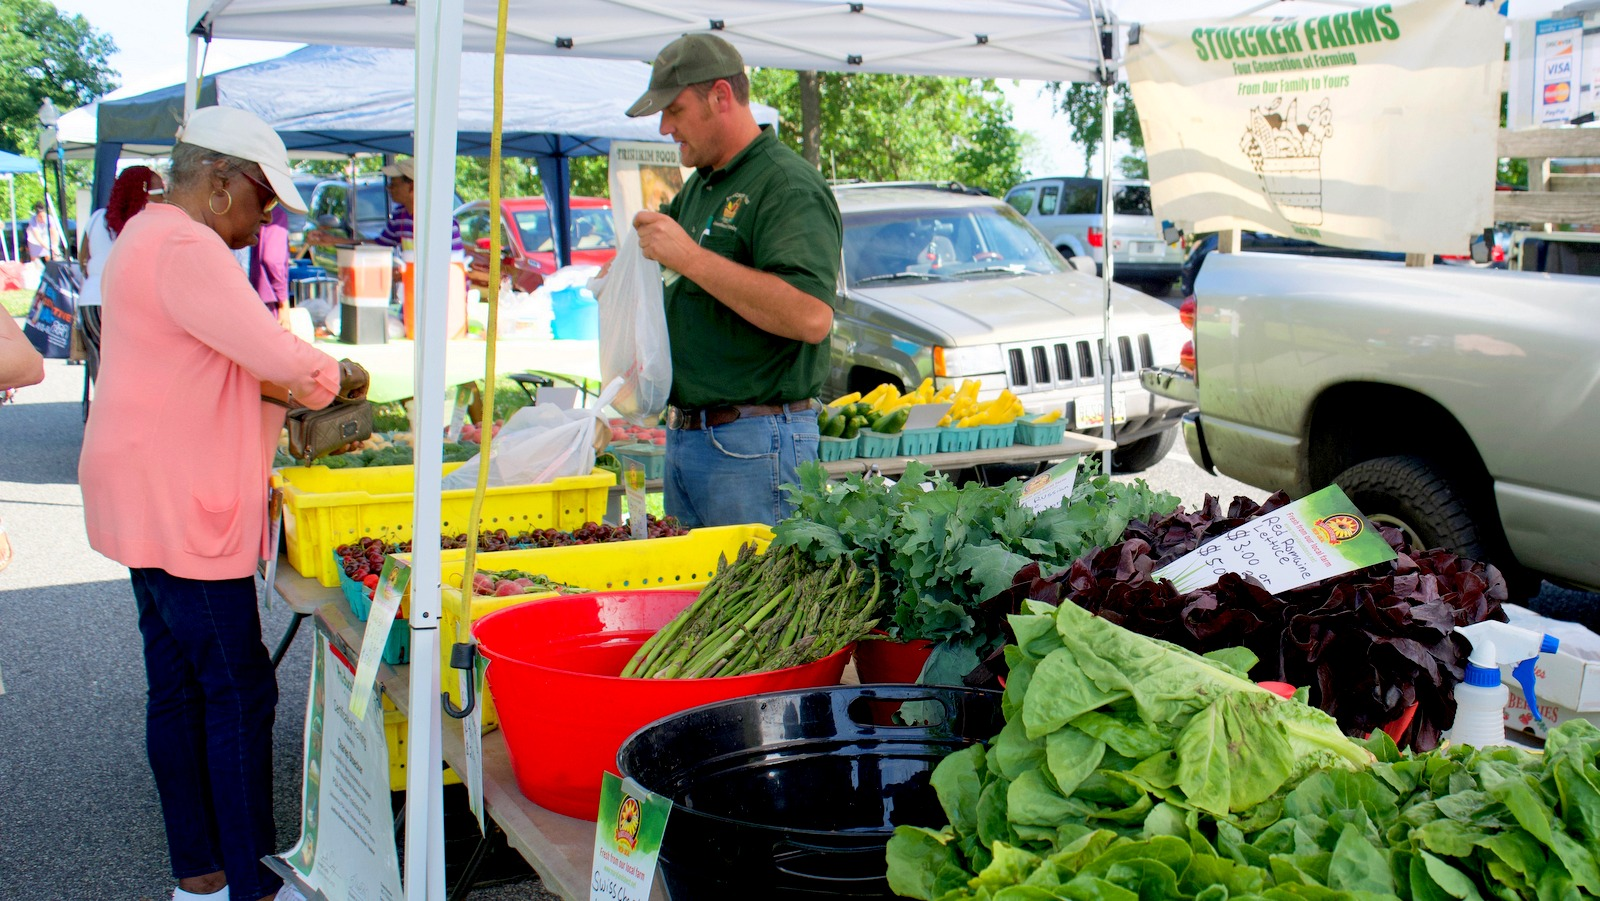 Shoppers have fresh local beets, asparagus, squash much more produce to choose from. (Lizzie Kane)